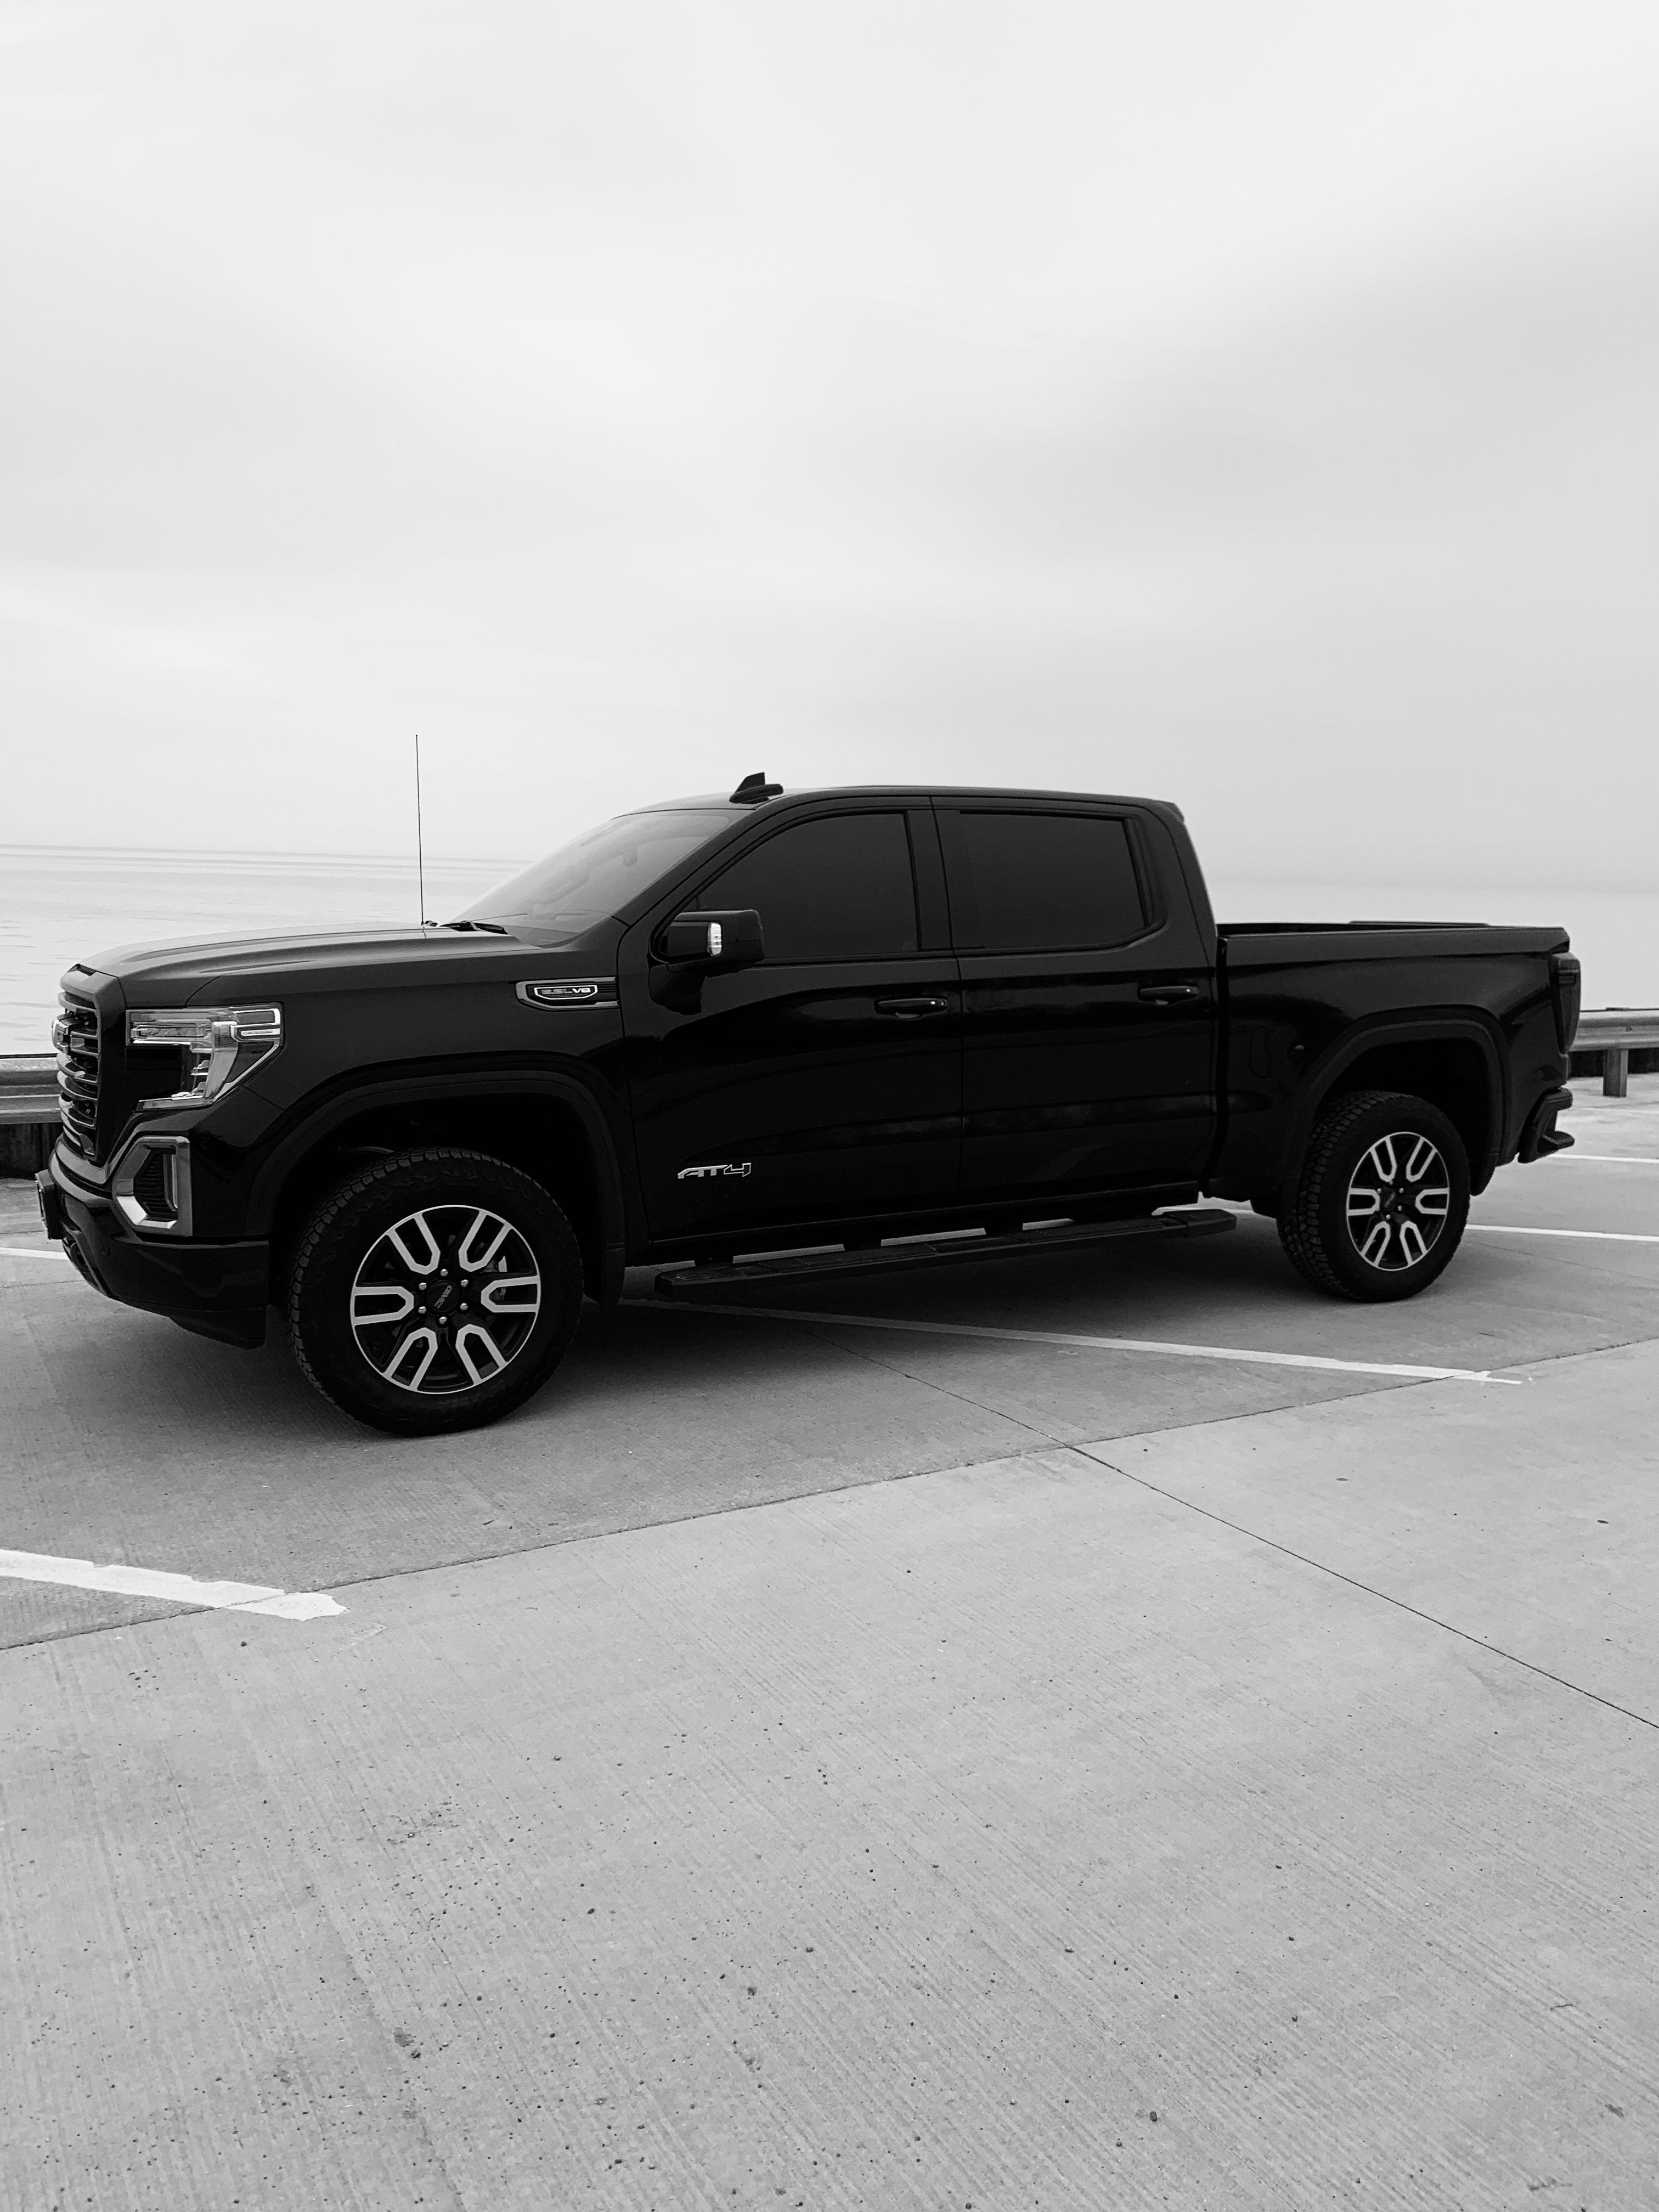 Cars Image By Ghost Chevy Trucks Gmc Cars Trucks